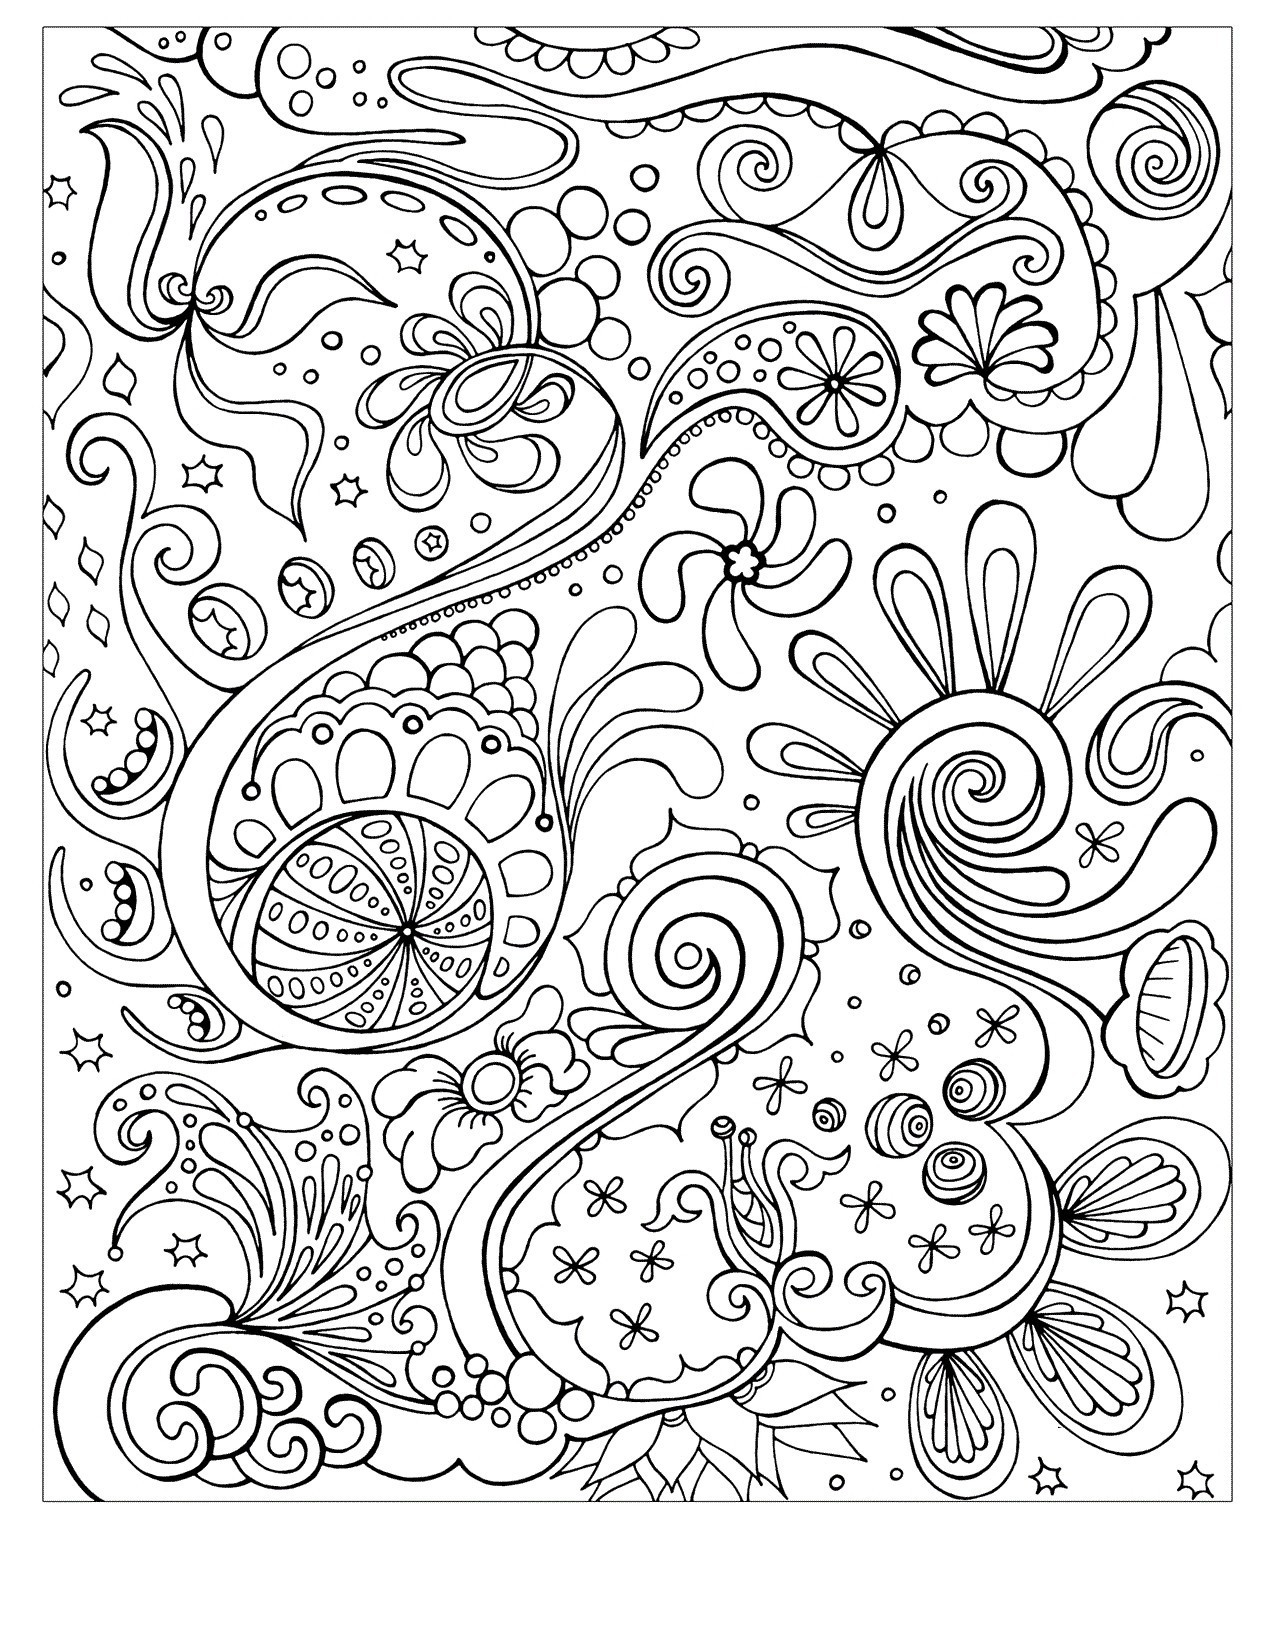 Grayscale Coloring Pages  Download 8n - Free For kids